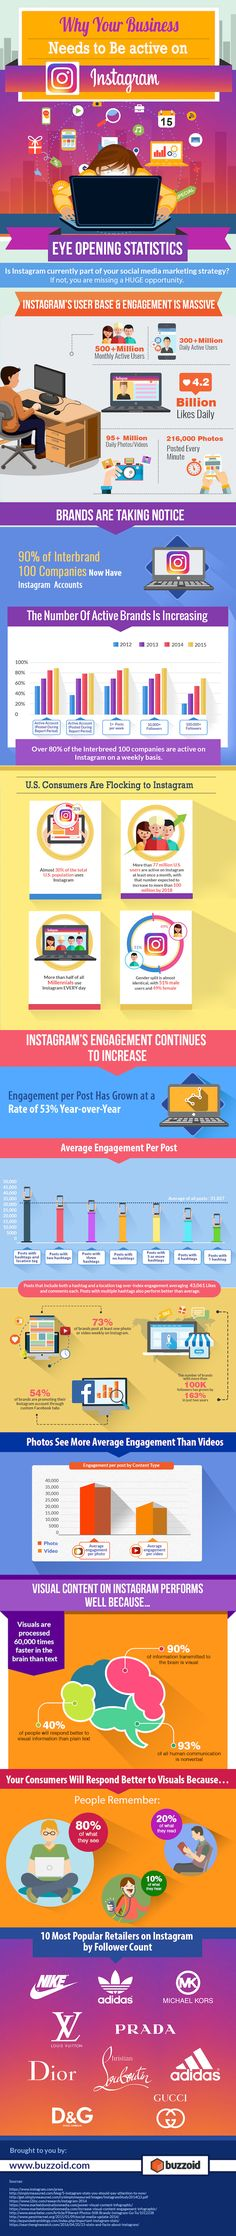 Why Instagram Needs to Be Part of Your Marketing Strategy [Infographic] | Social Media Today